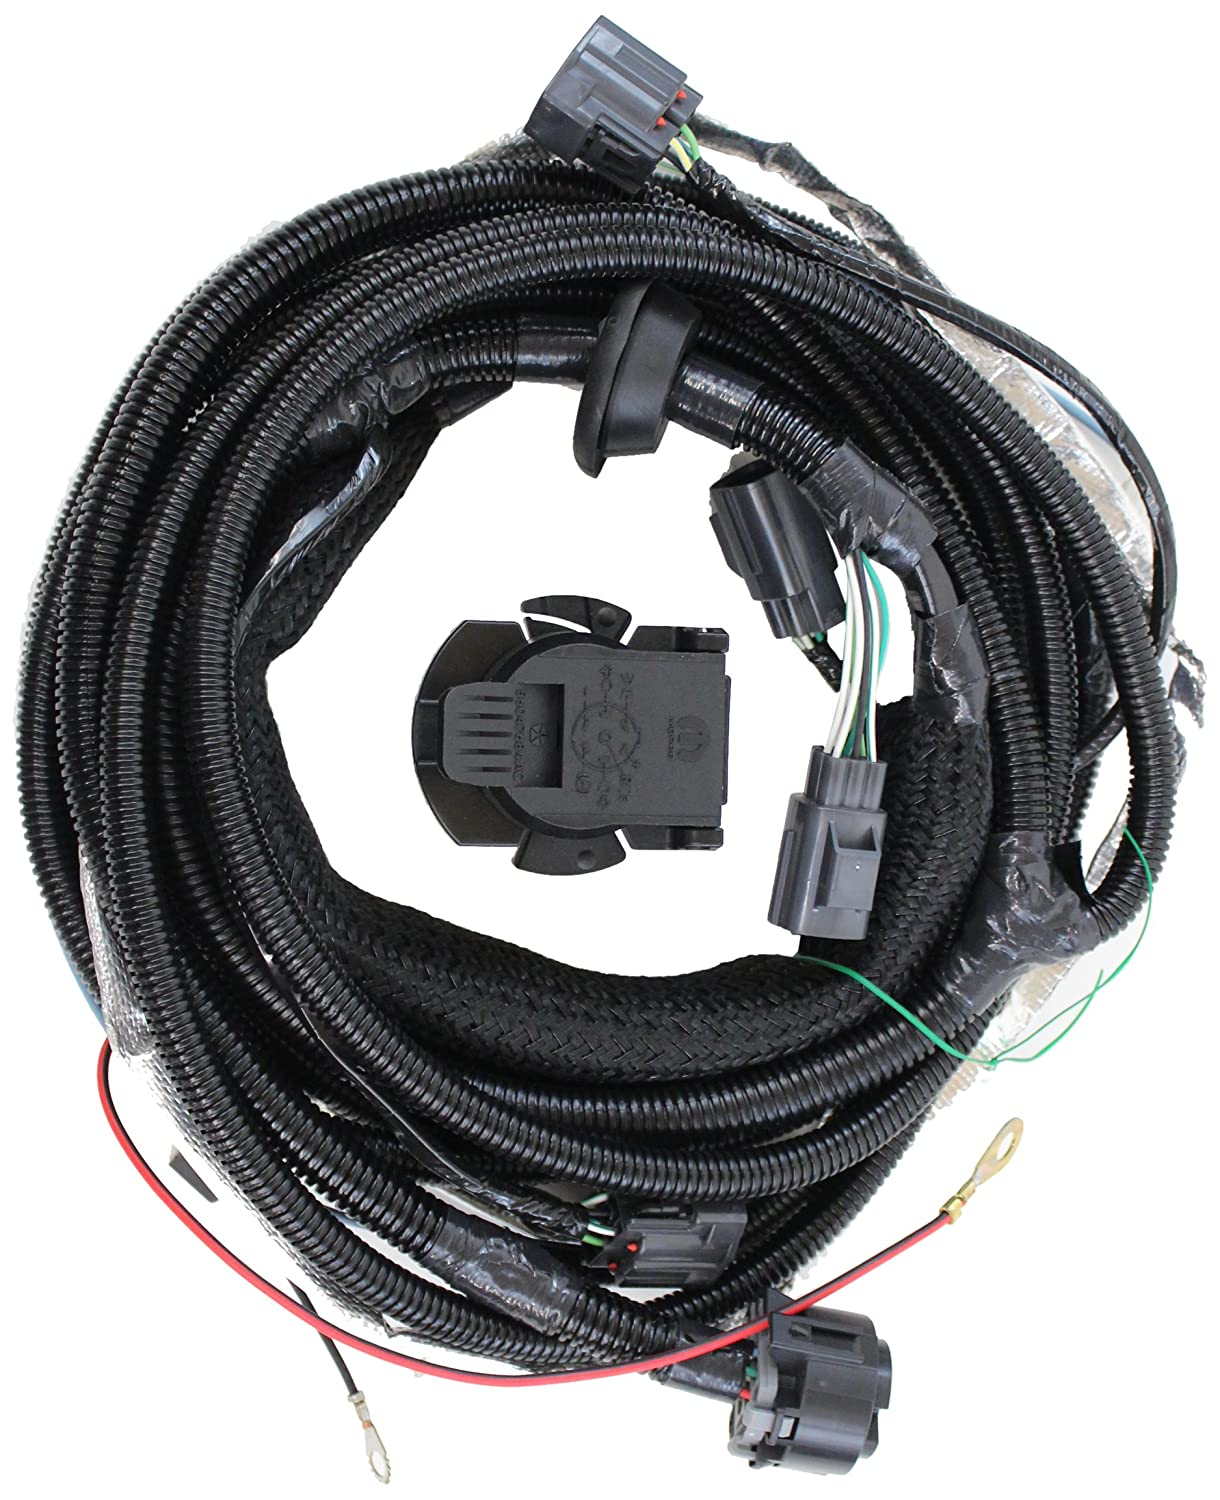 918XganRXOL._SL1500_ amazon com genuine jeep accessories 82210642ad trailer tow wiring Dodge Trailer Wiring Colors at gsmportal.co